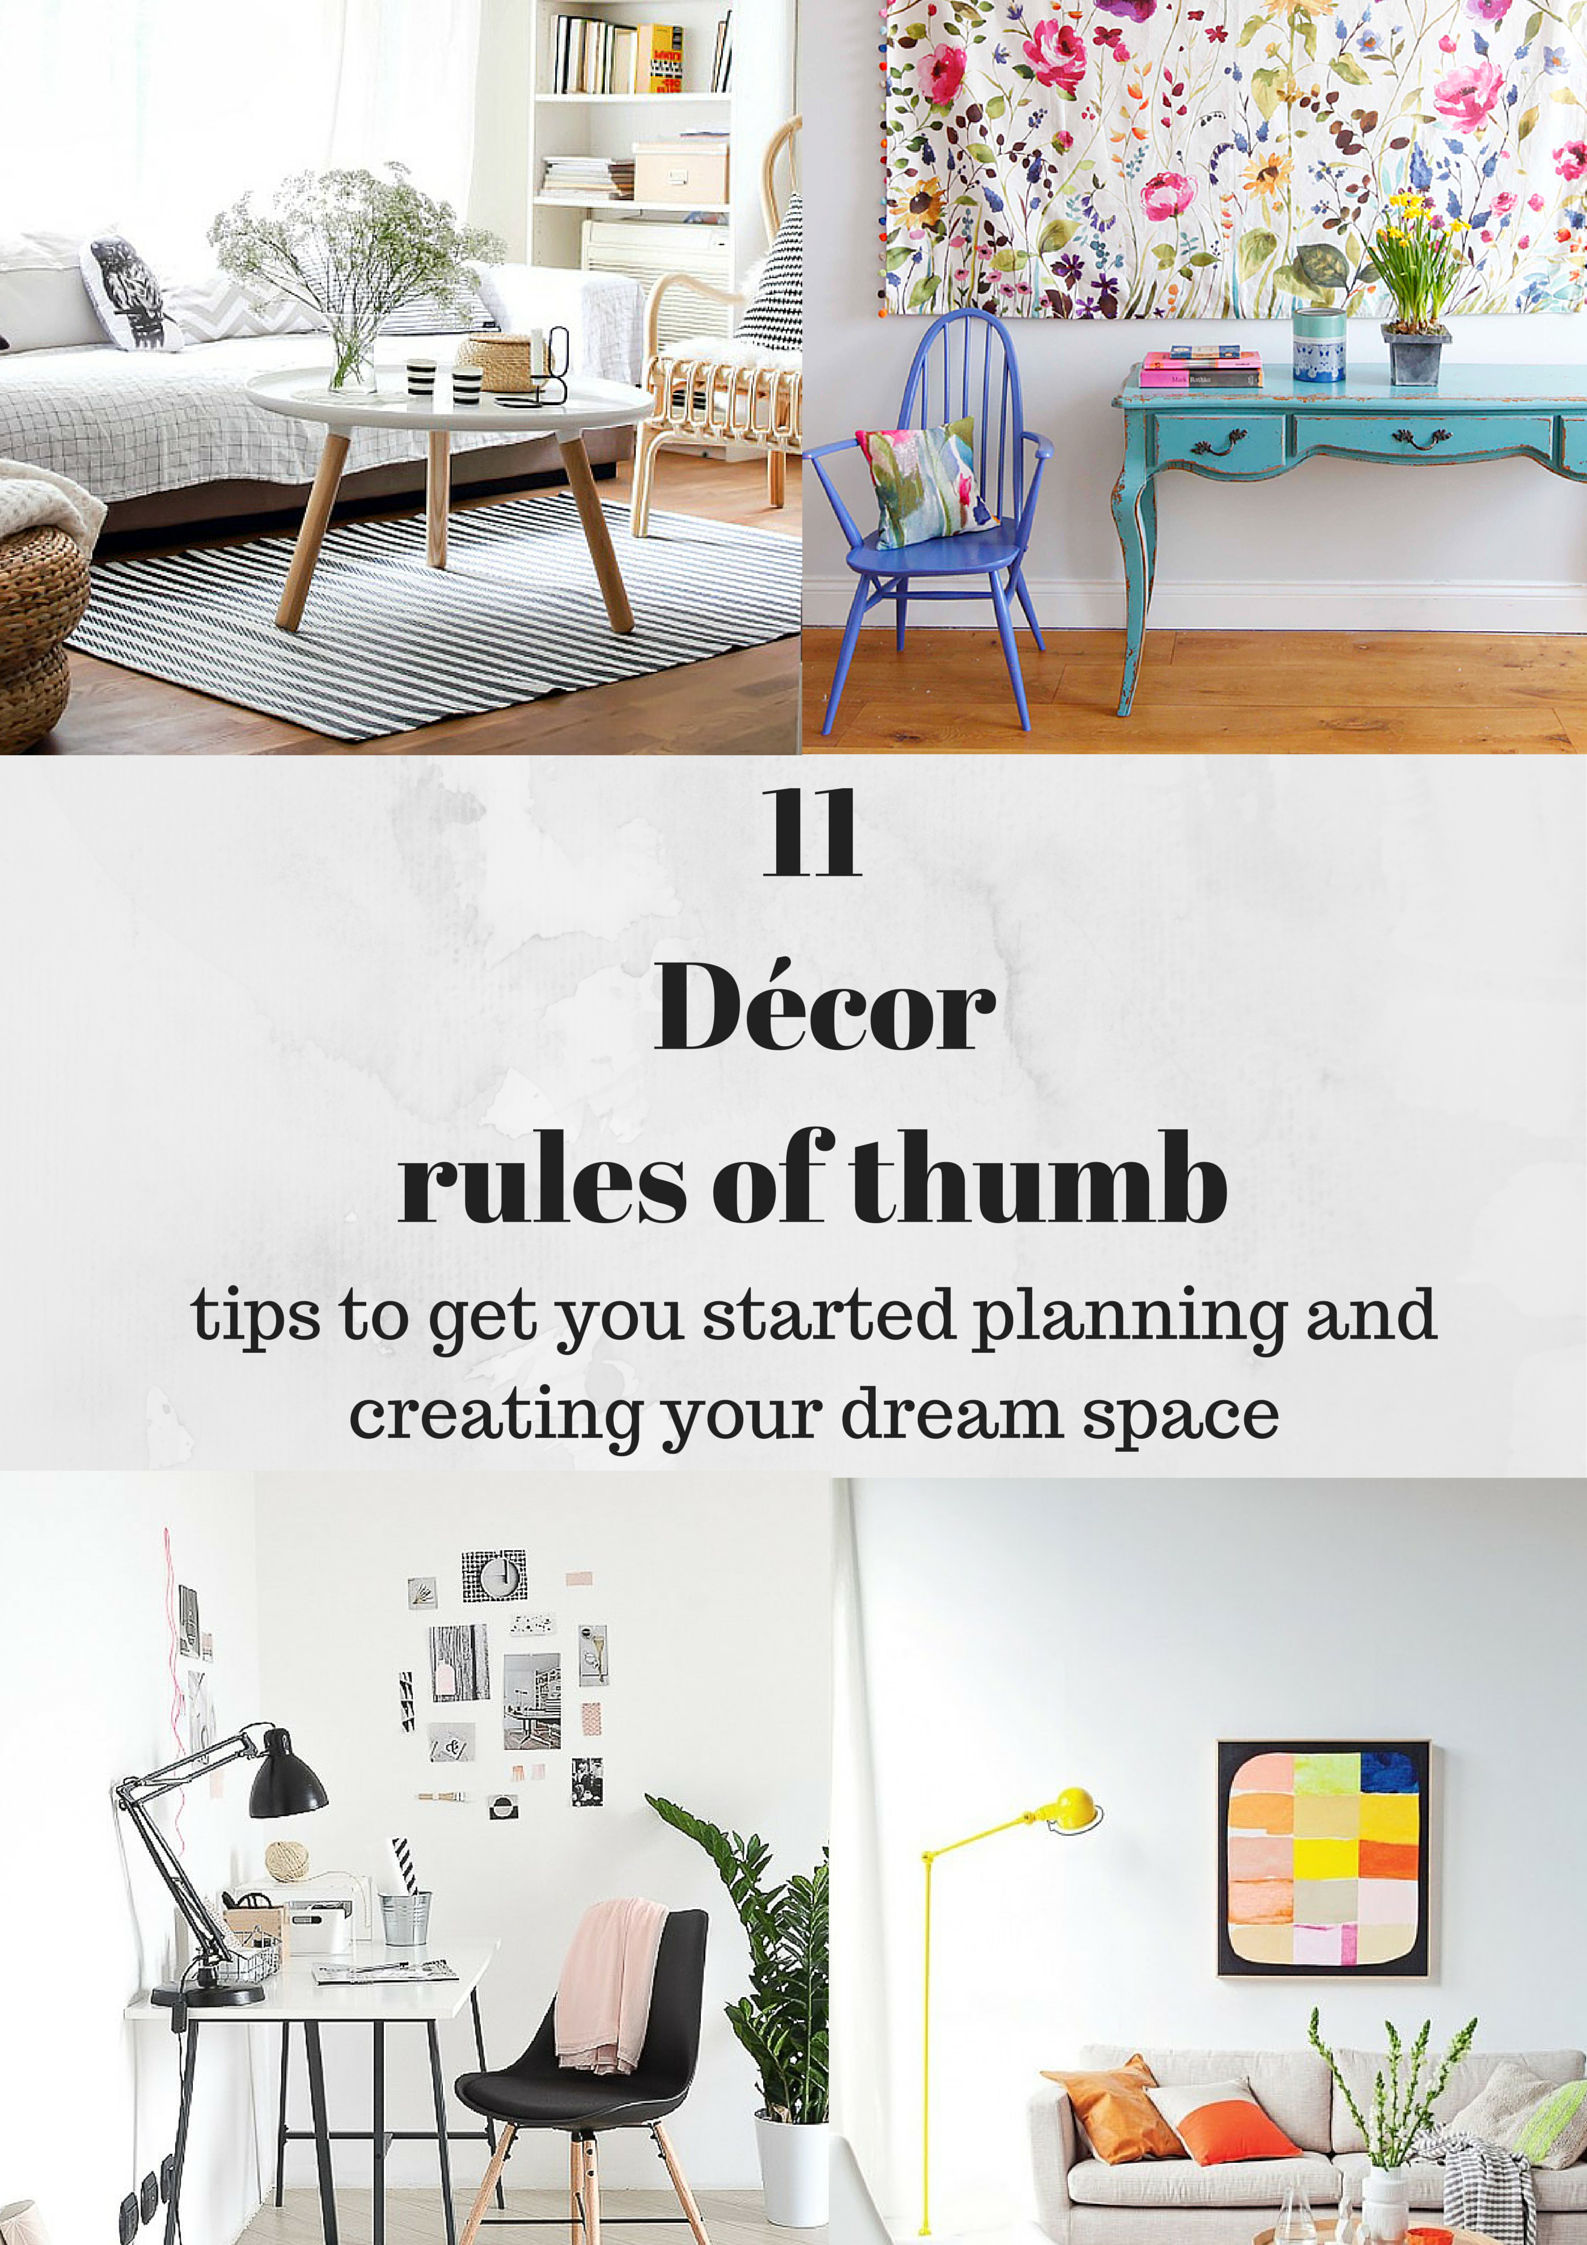 11 Décor rules of thumb via www.surelysimple.com